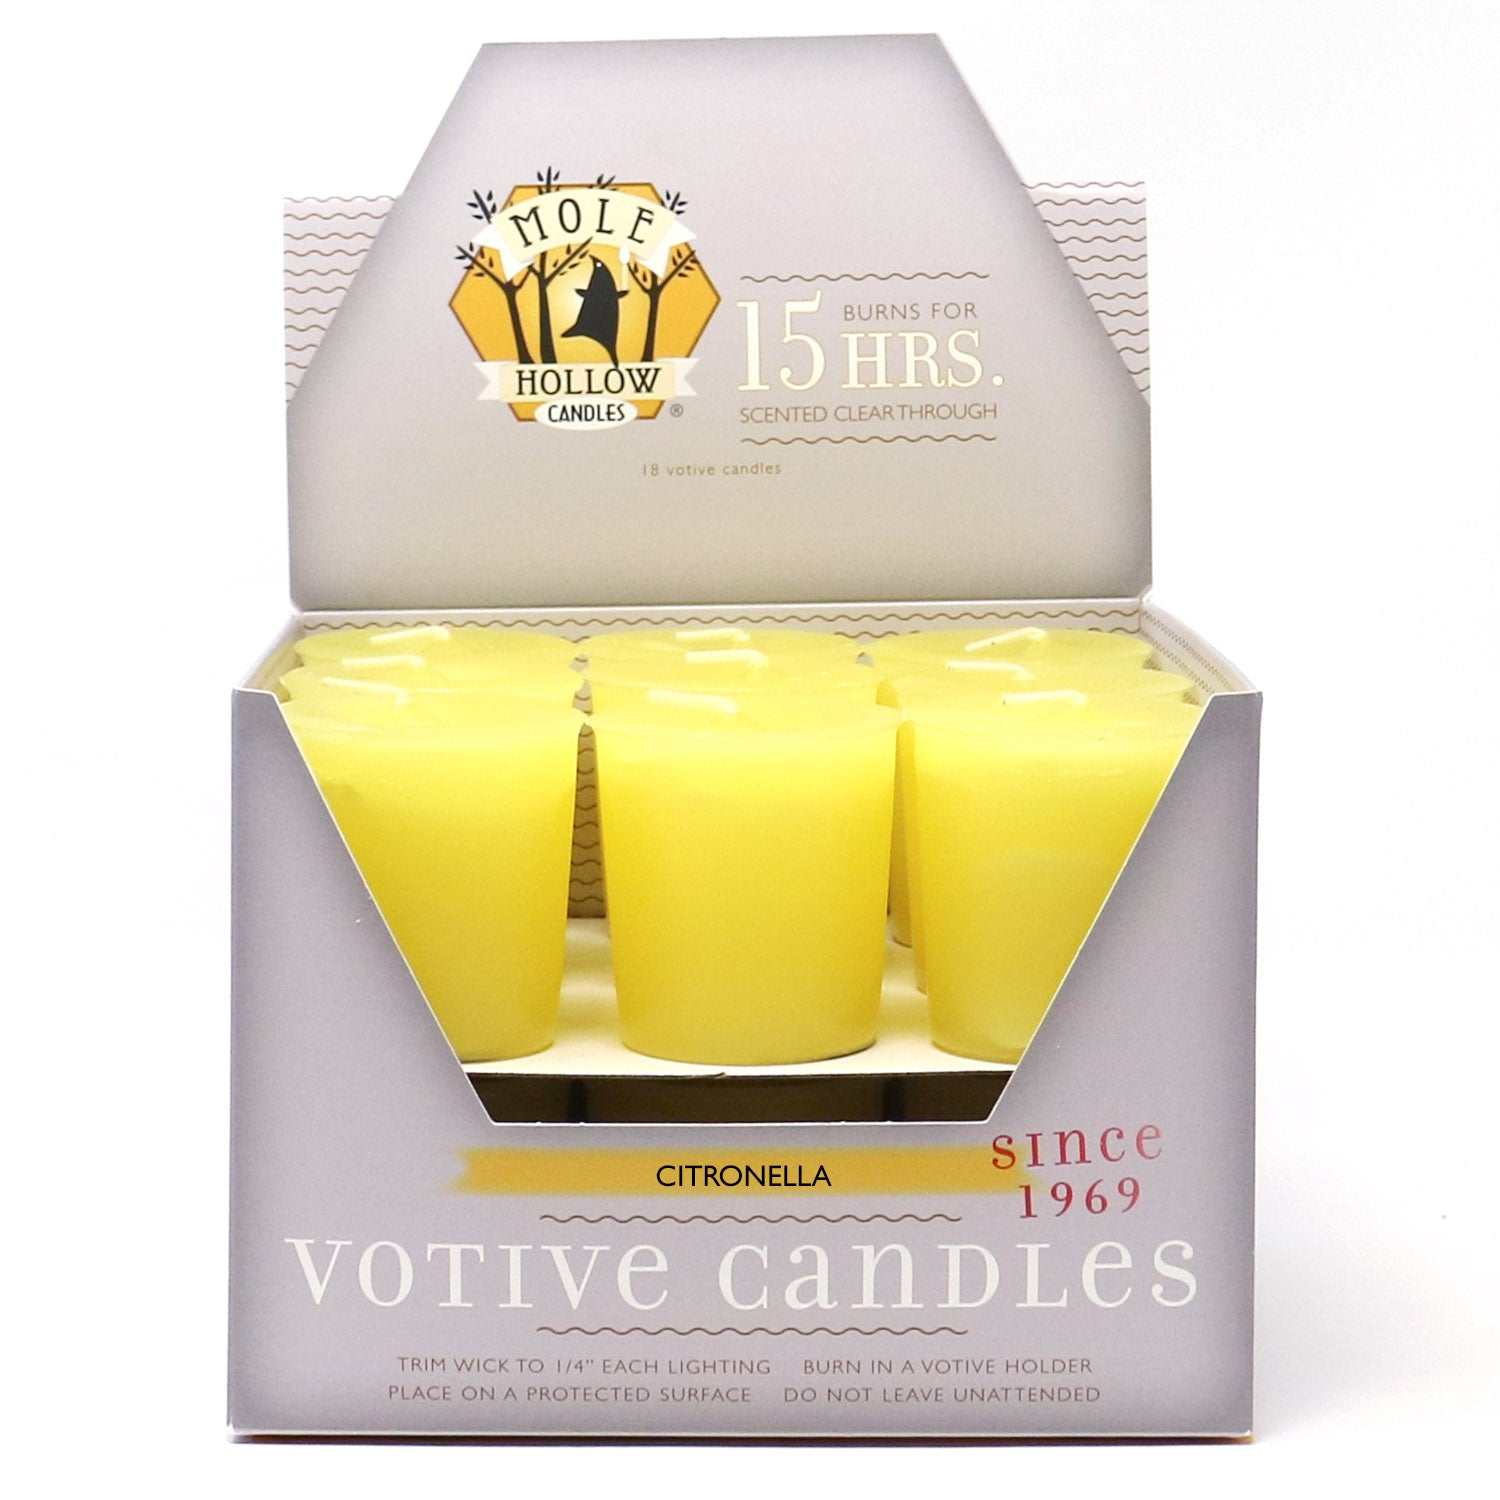 Citronella Votive Candles - Citronella Scented Candle - Mole Hollow Candles